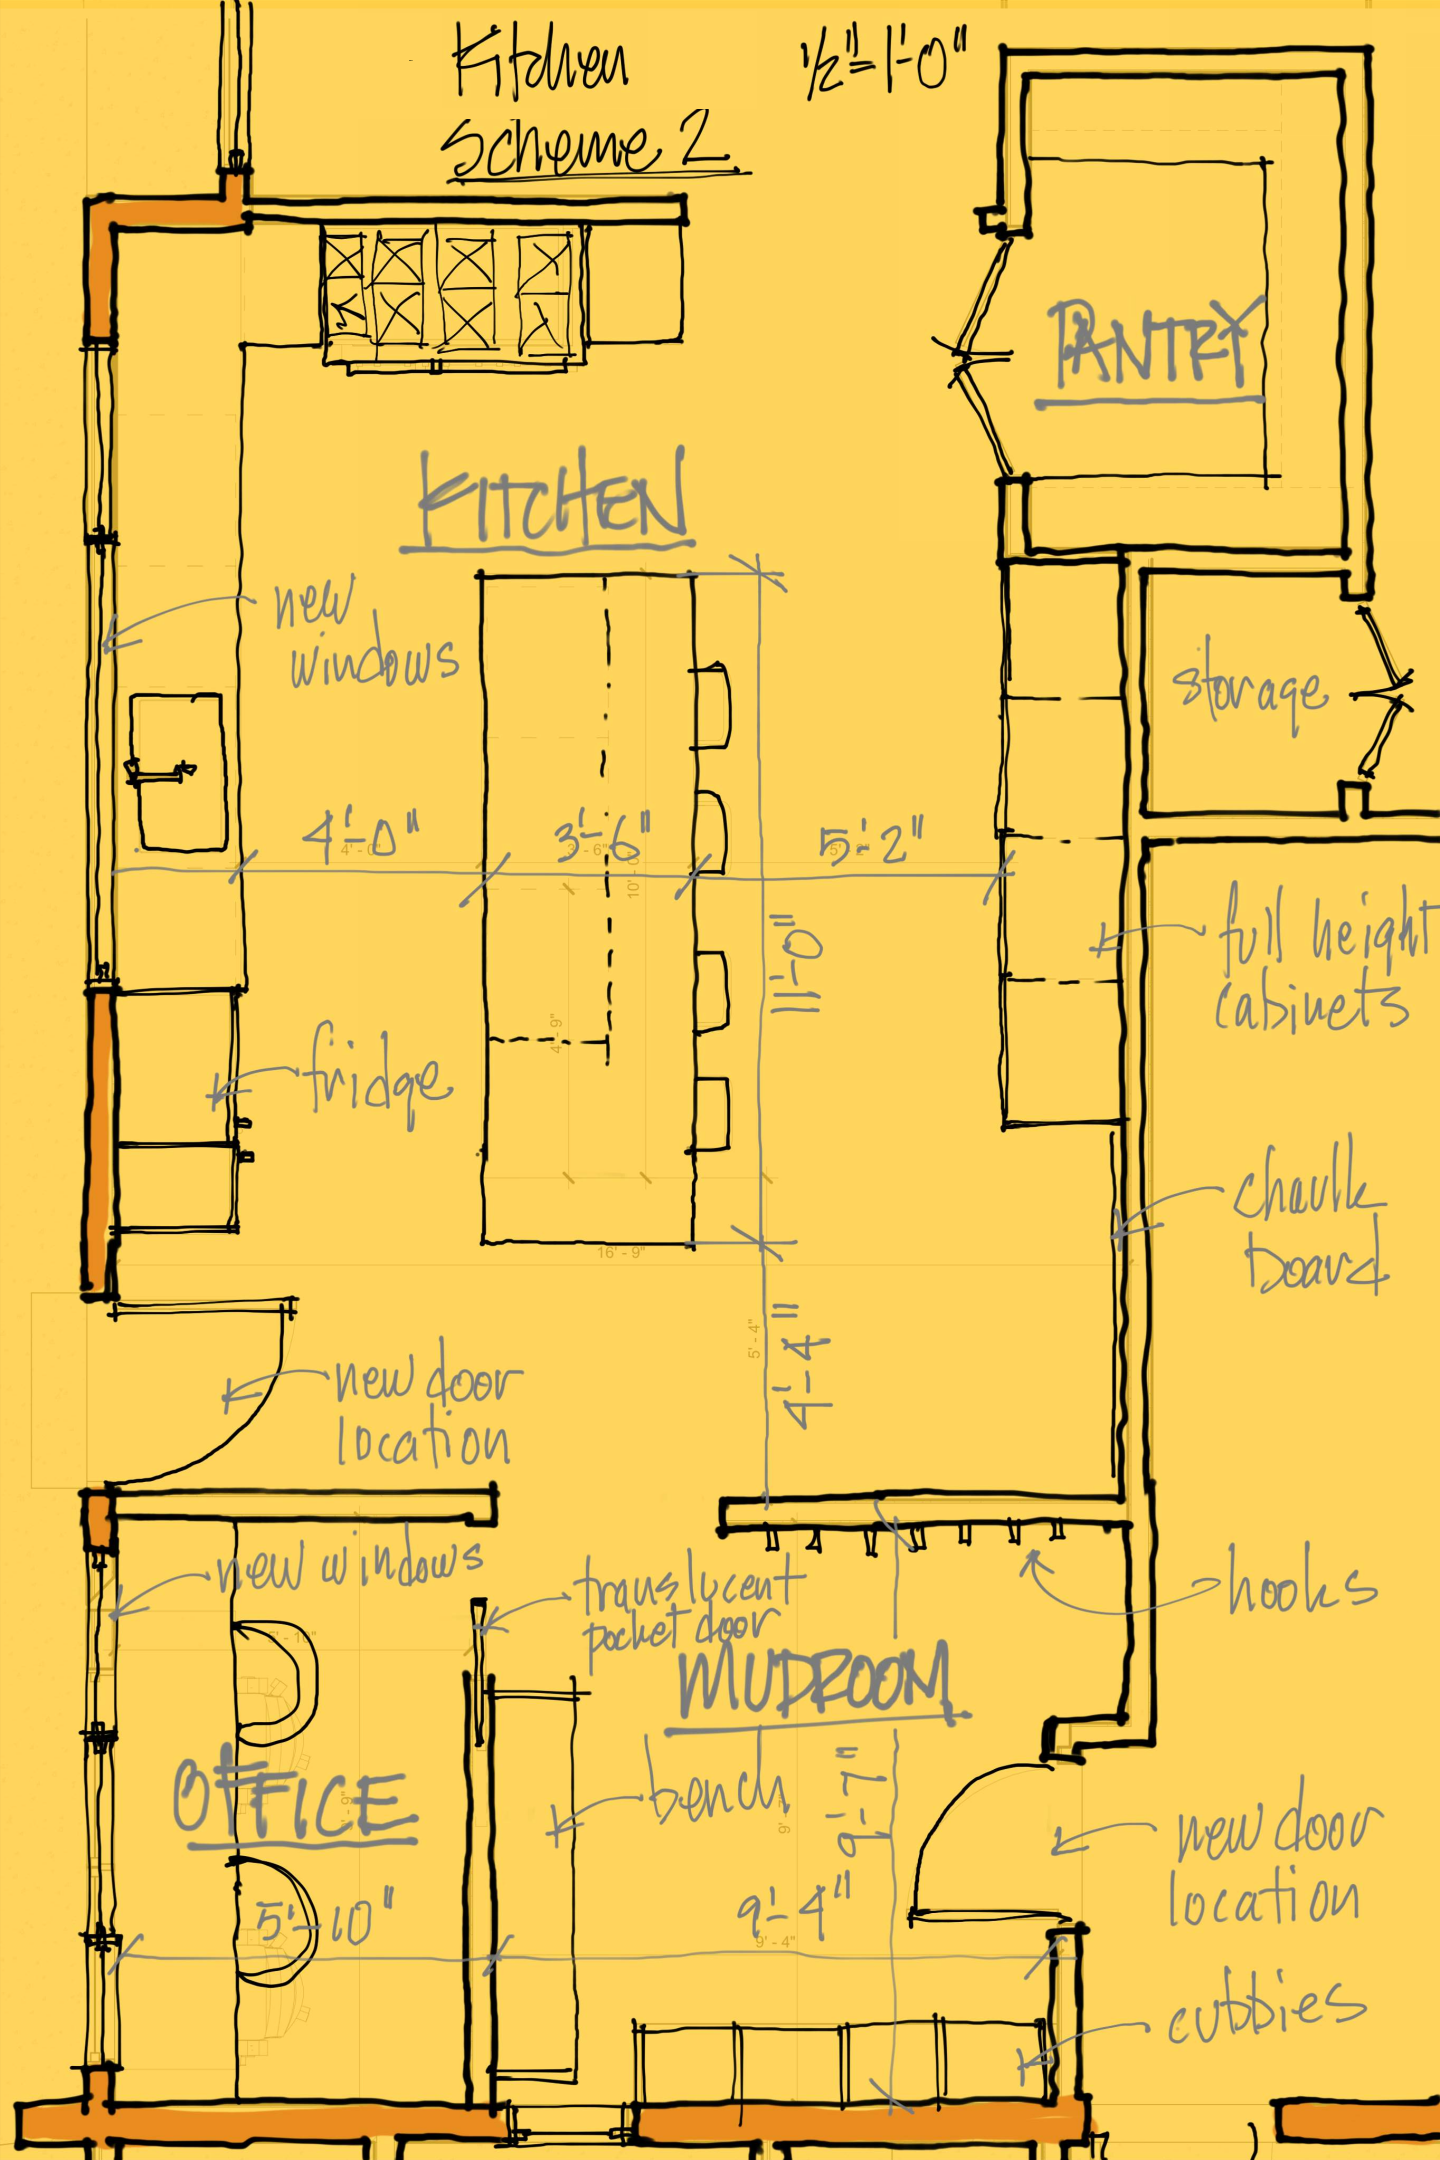 Wellshire Schematic Design Plan Sketche Kitchen Scheme 2.png